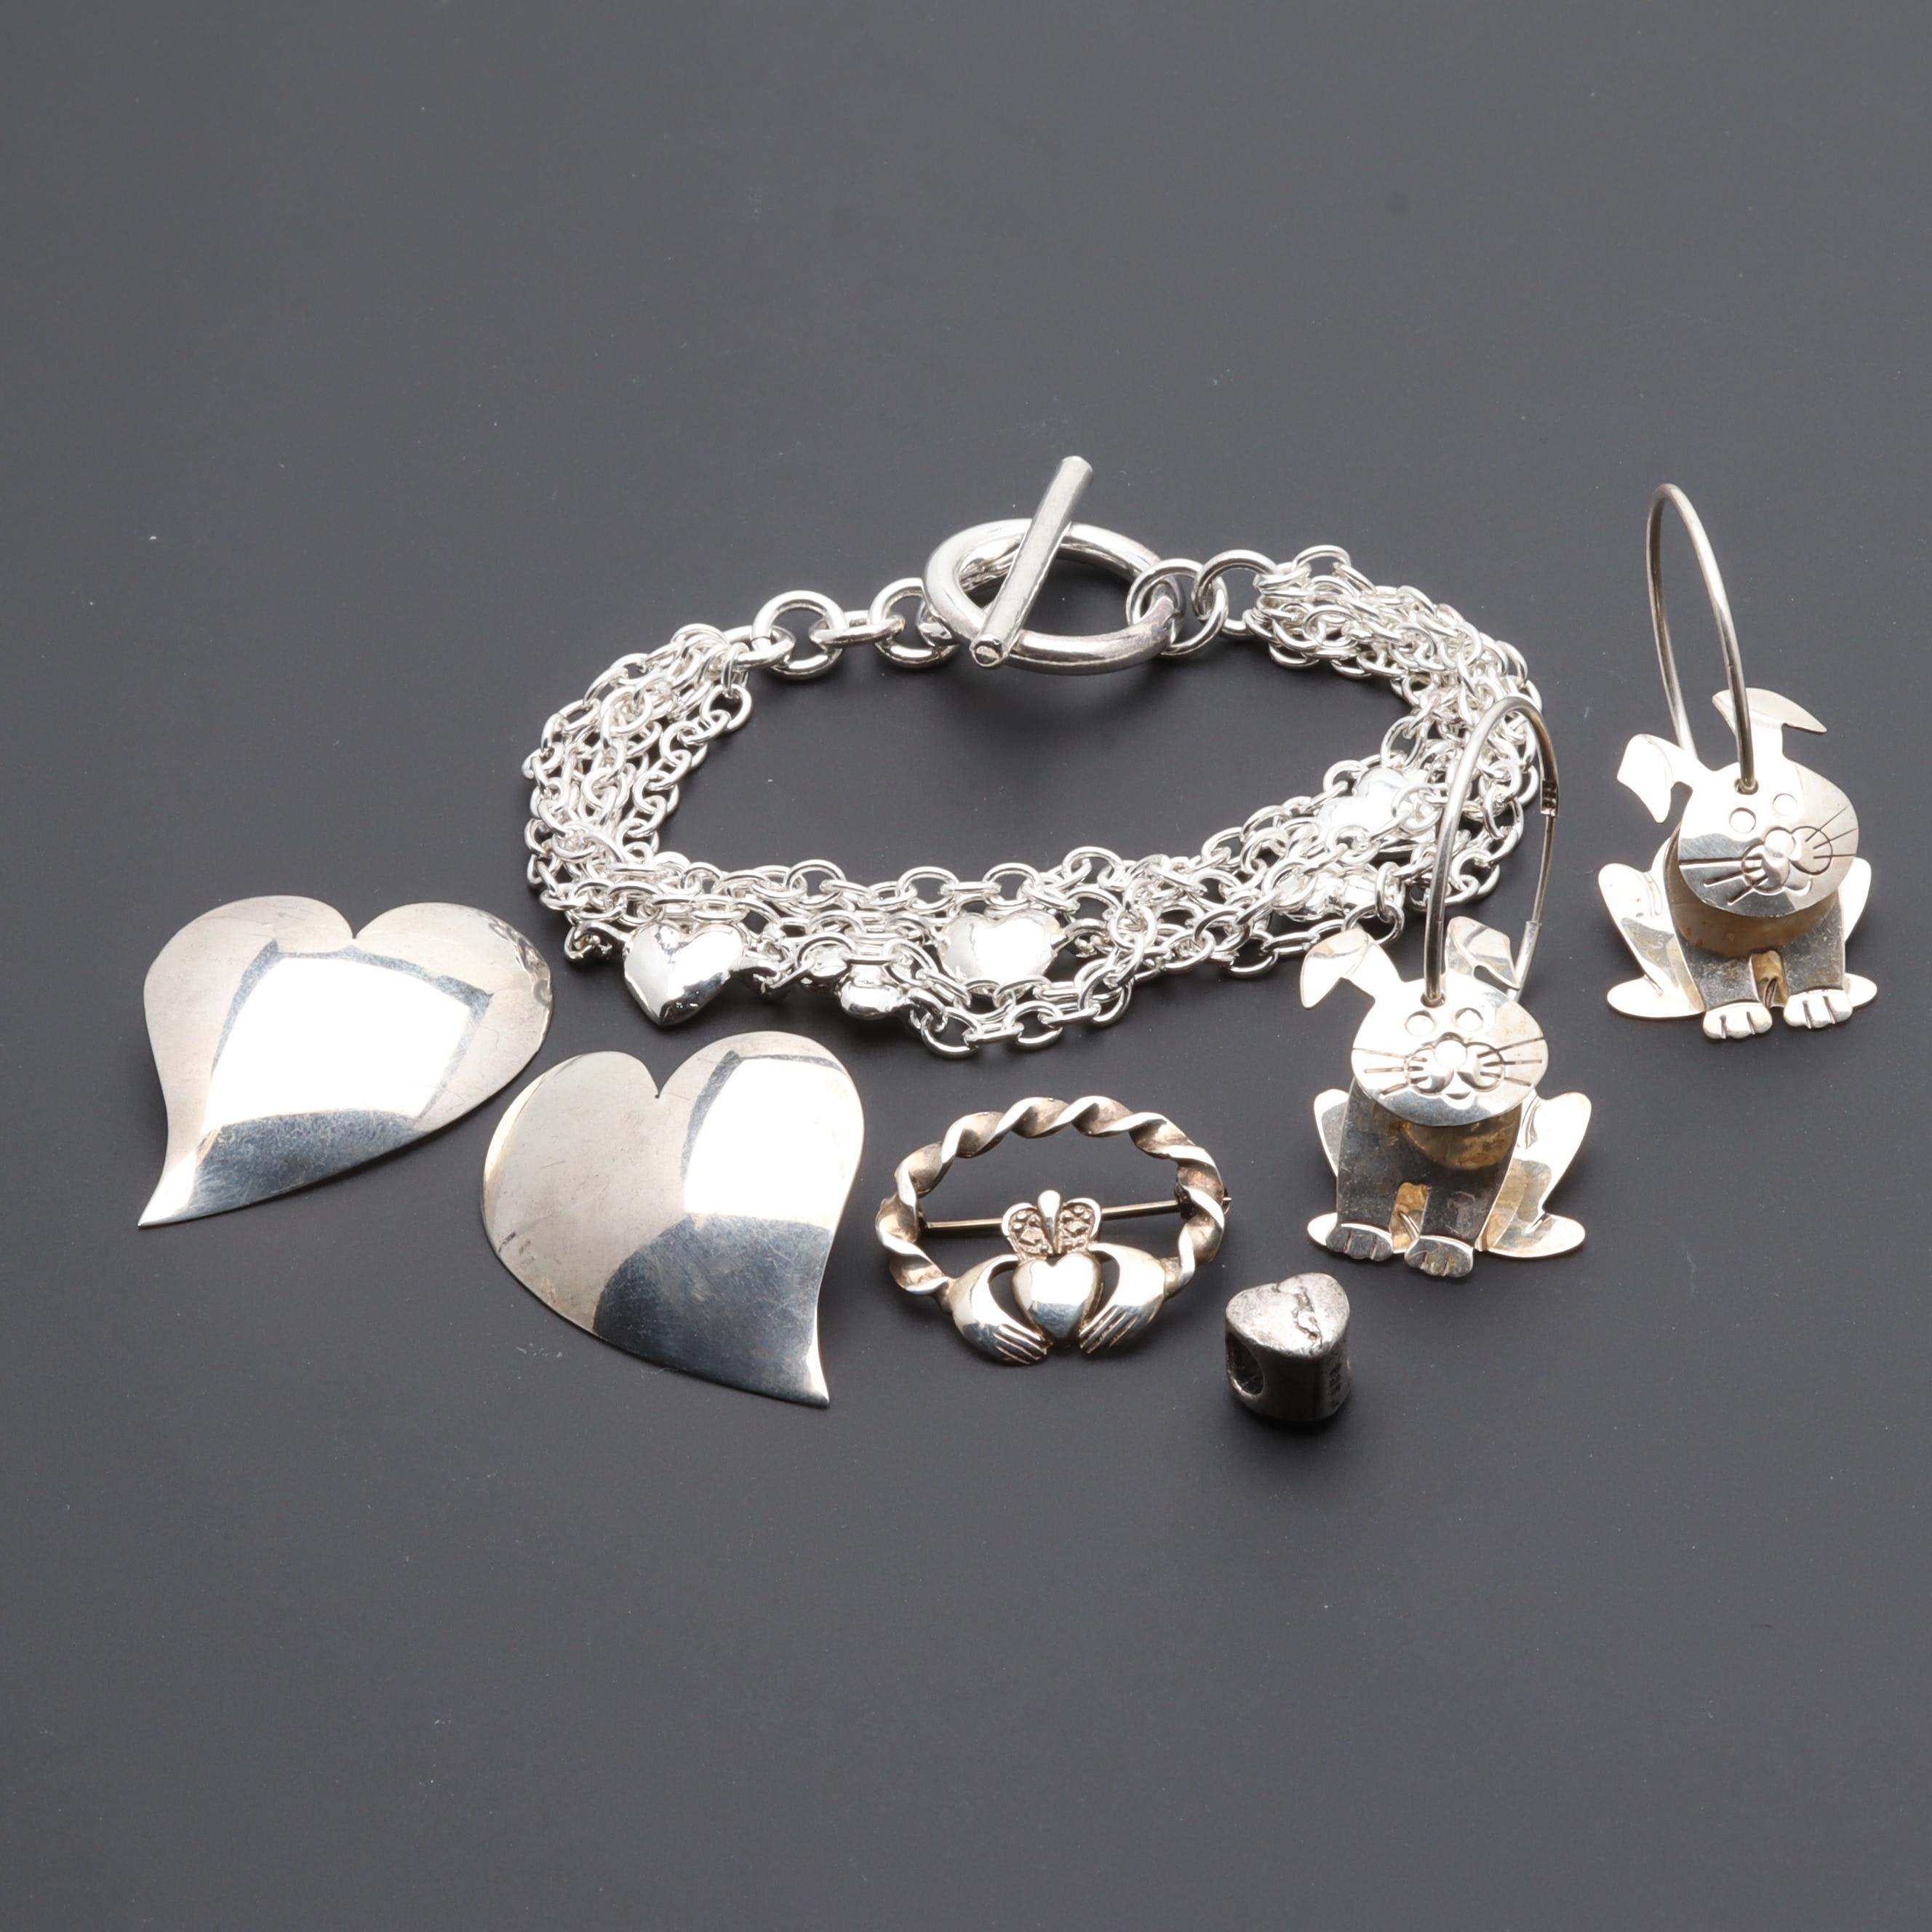 Sterling Silver Jewelry Including Bracelet, Brooch, Earrings, and Bead